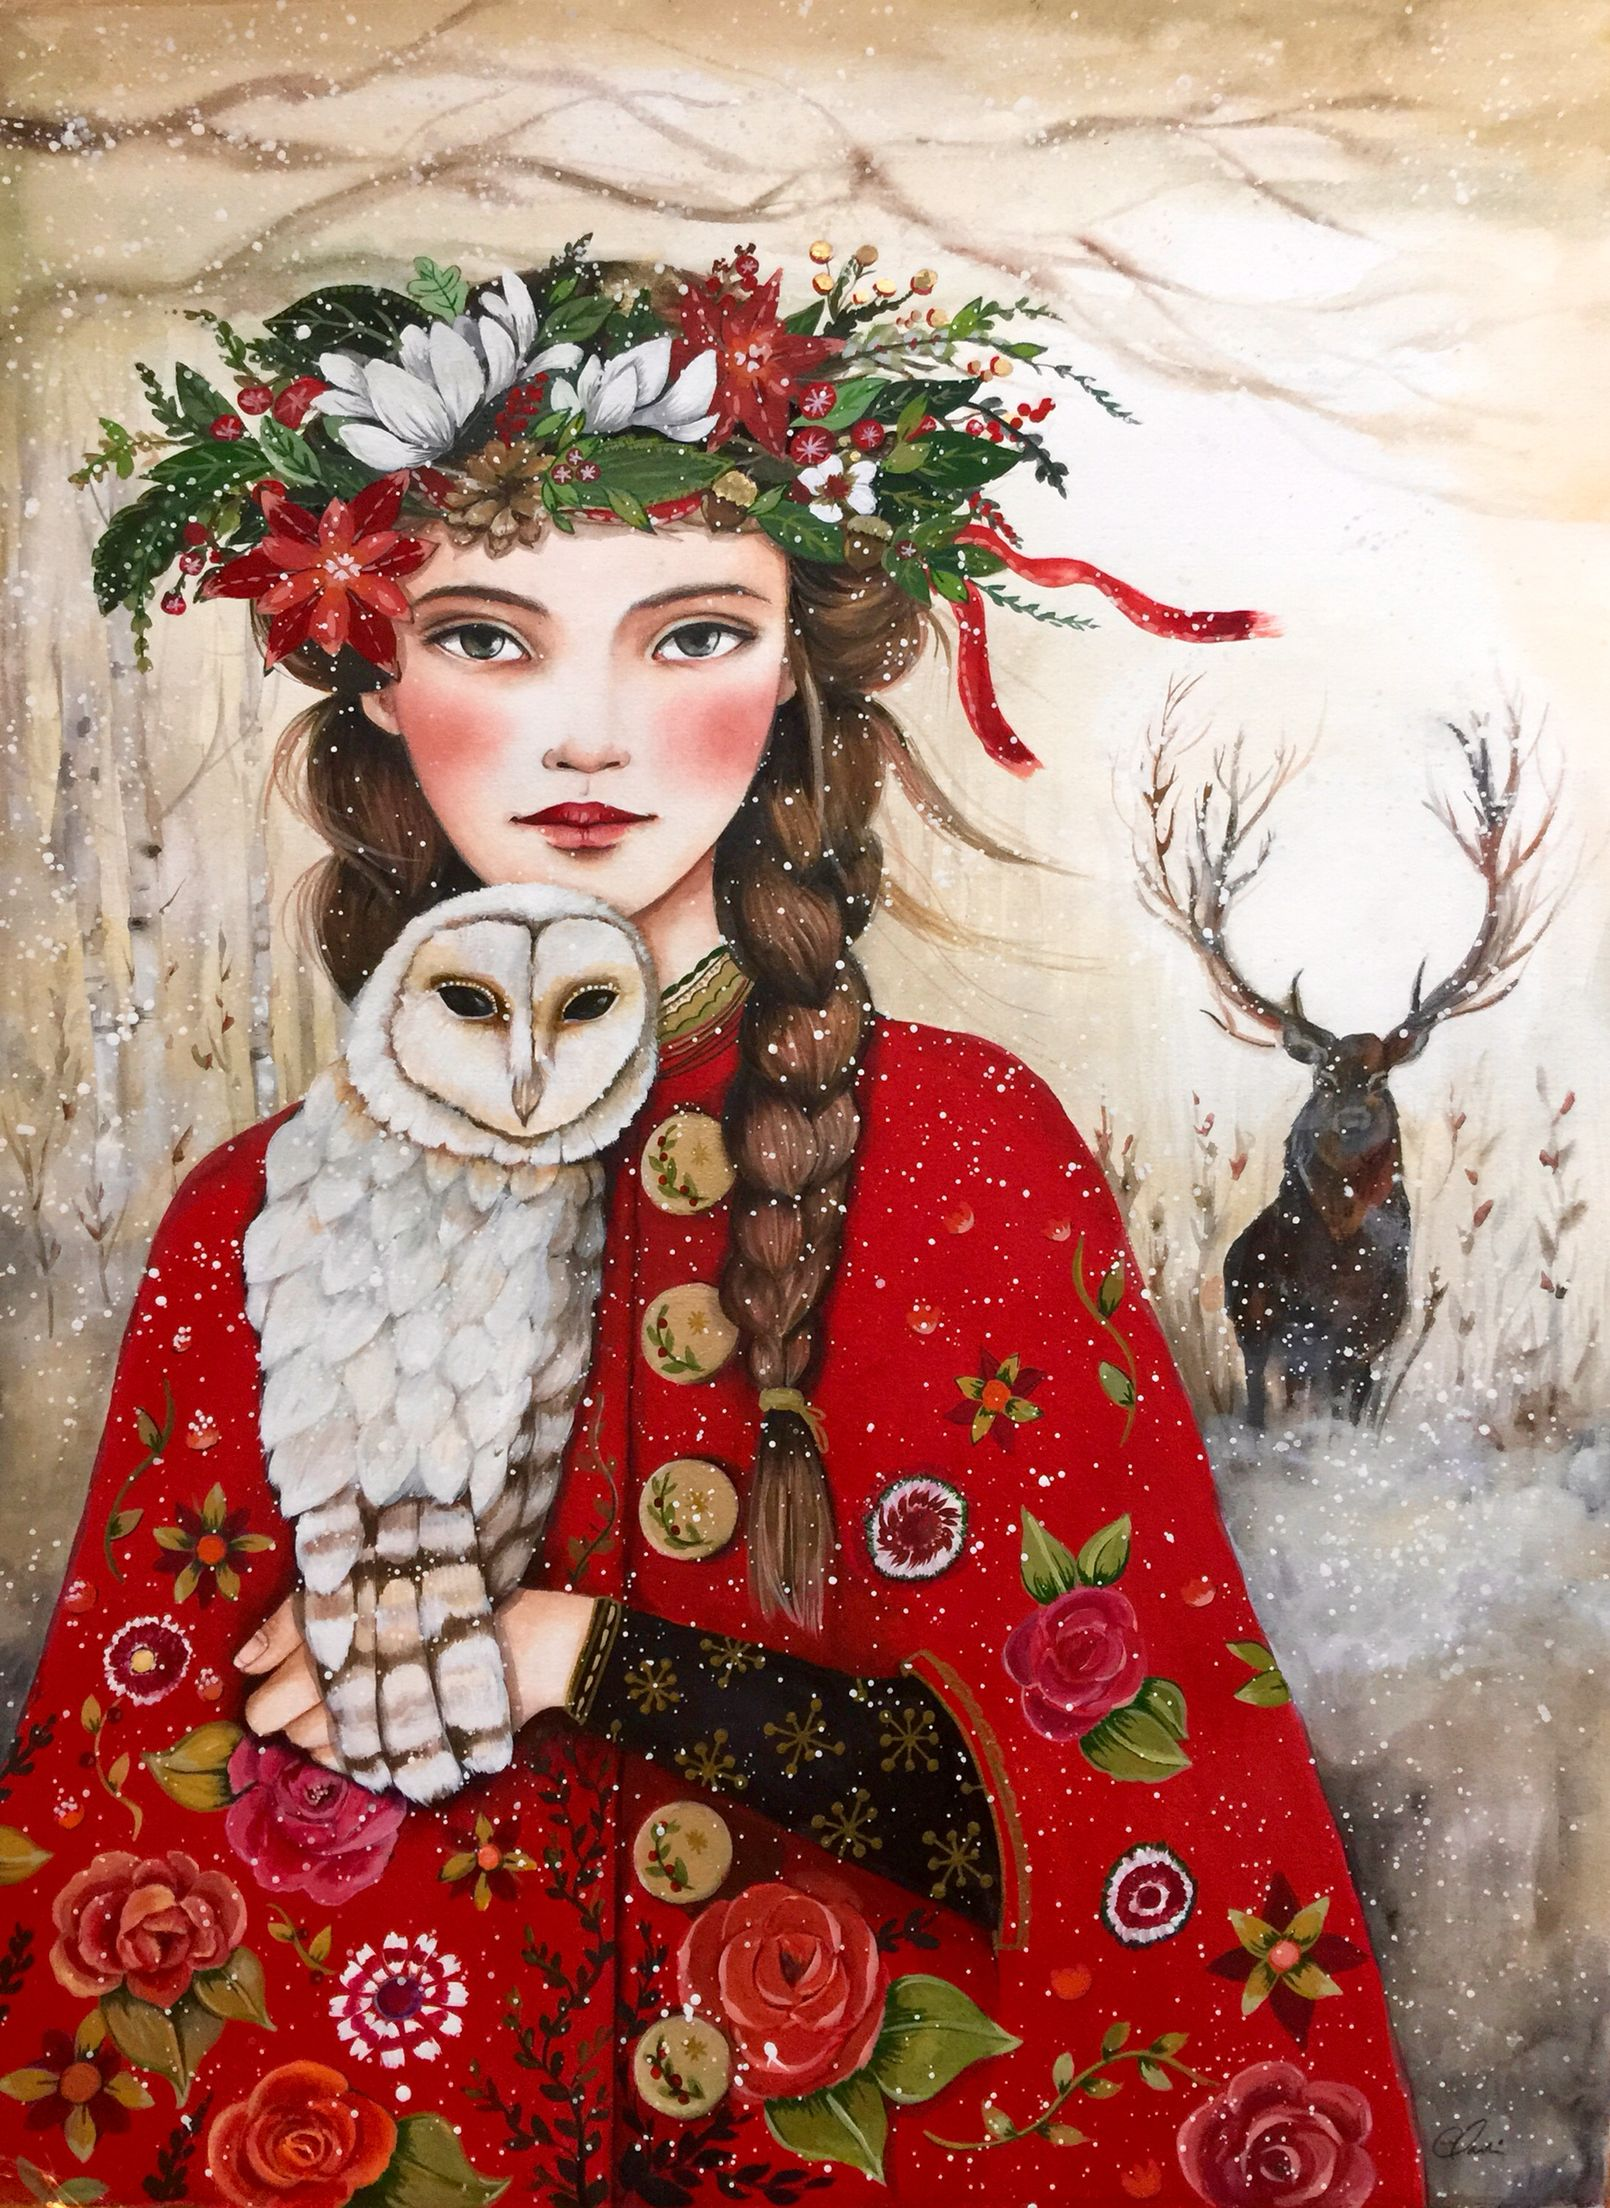 Solstice Art by Claudia Tremblay